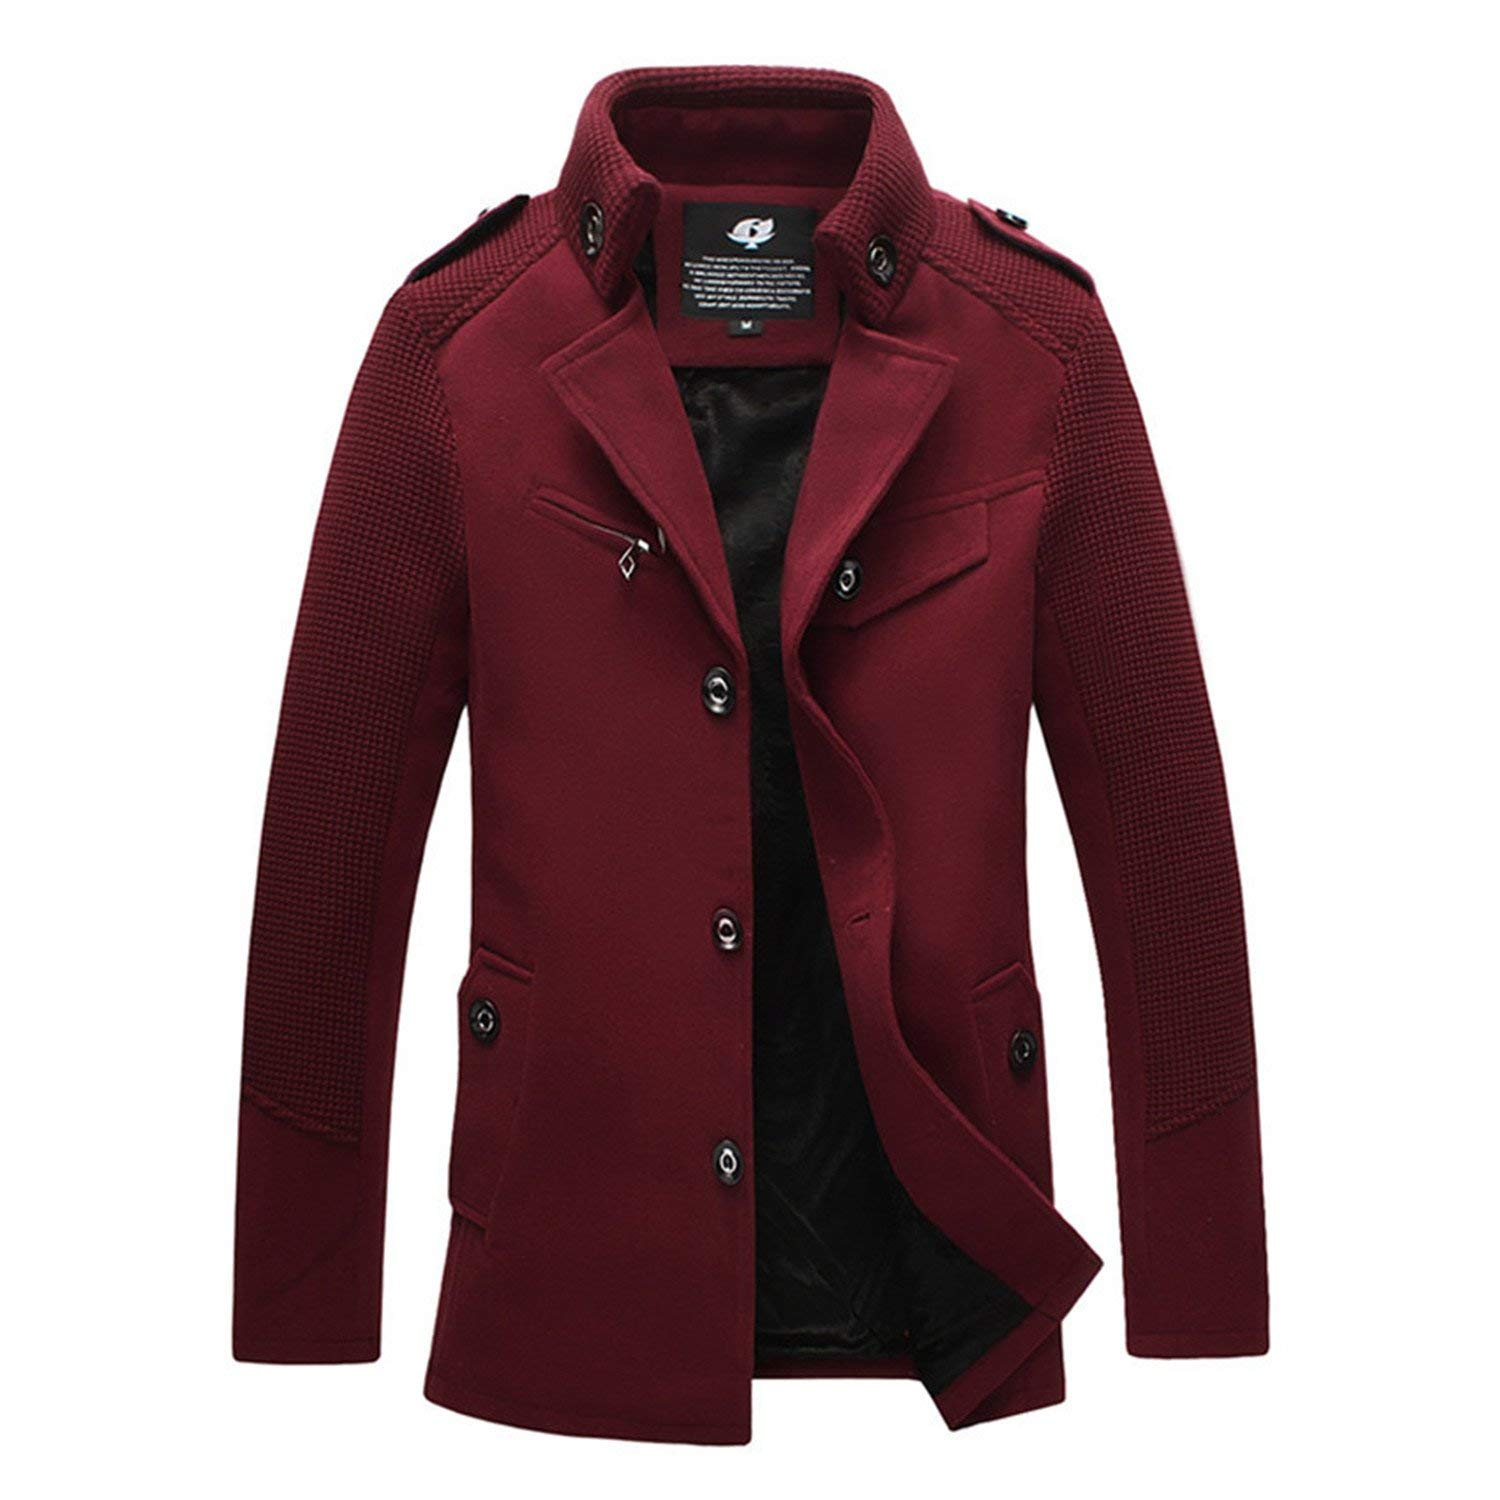 CrazyDay Mens Single-Breasted Casual Silm Fit Wool-Blend Pure Color Trench Coat Outwear